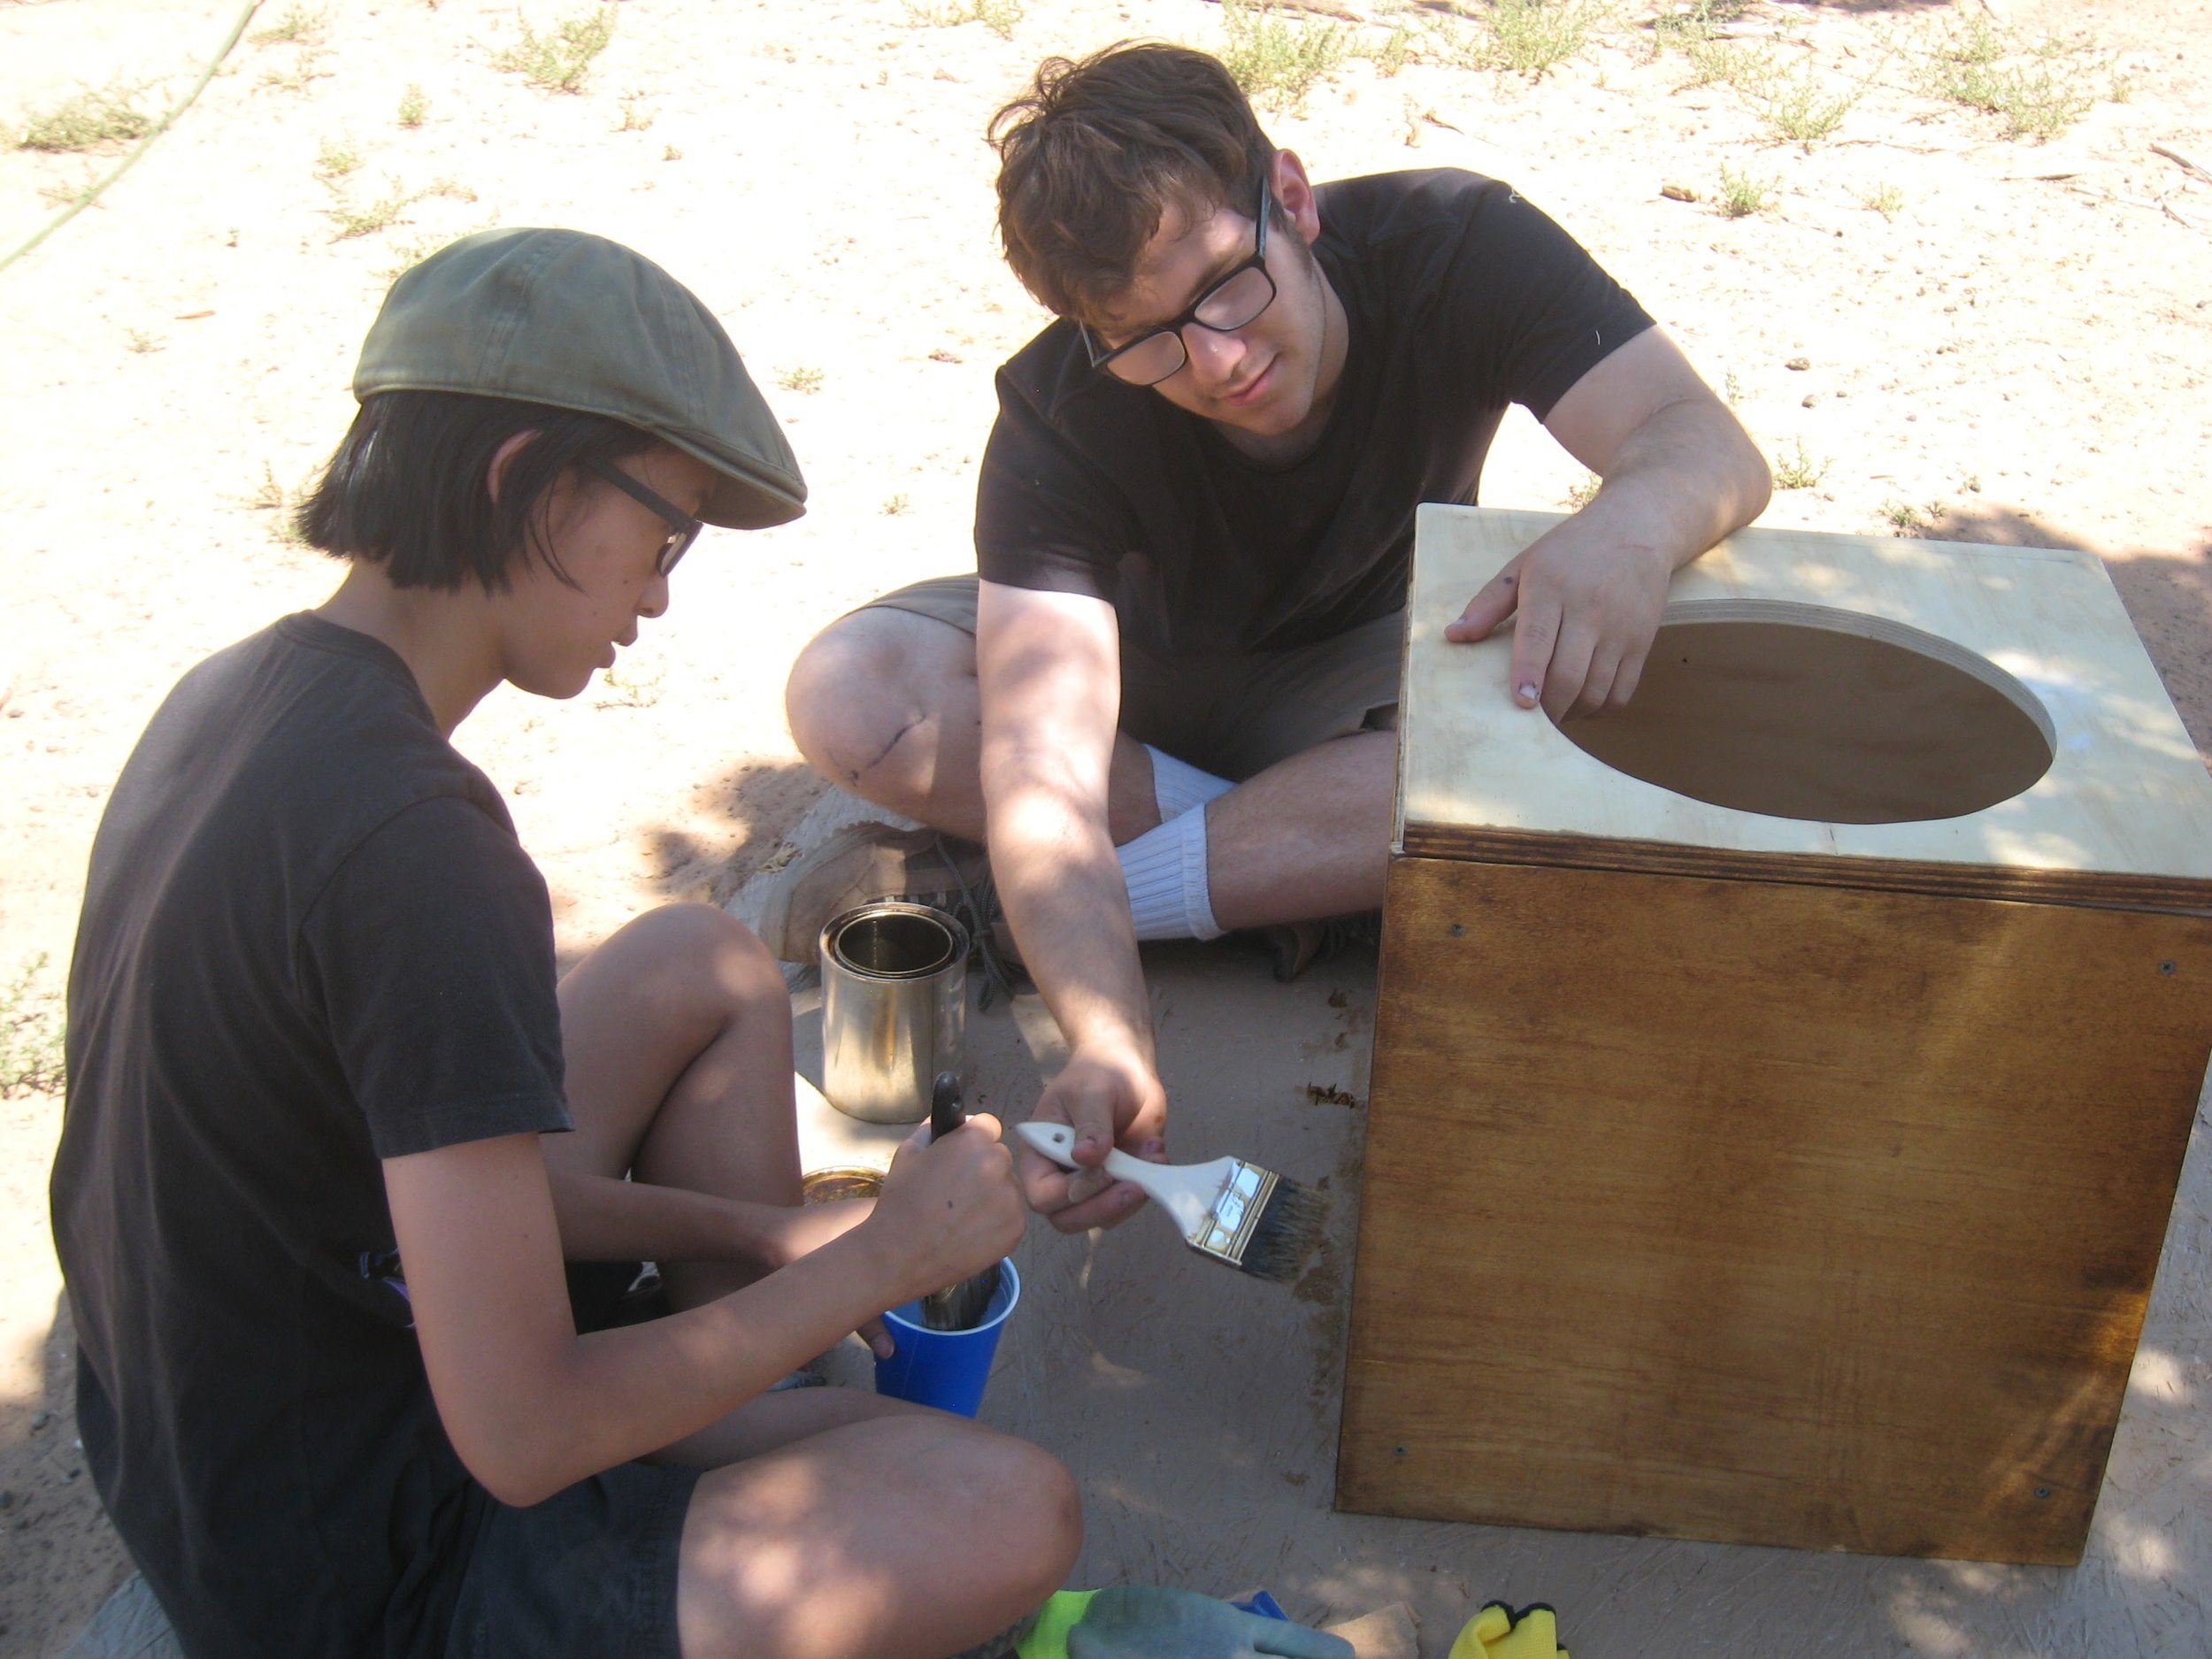 UCLA Engineers Without Borders students prepare a sink for installation in the house.